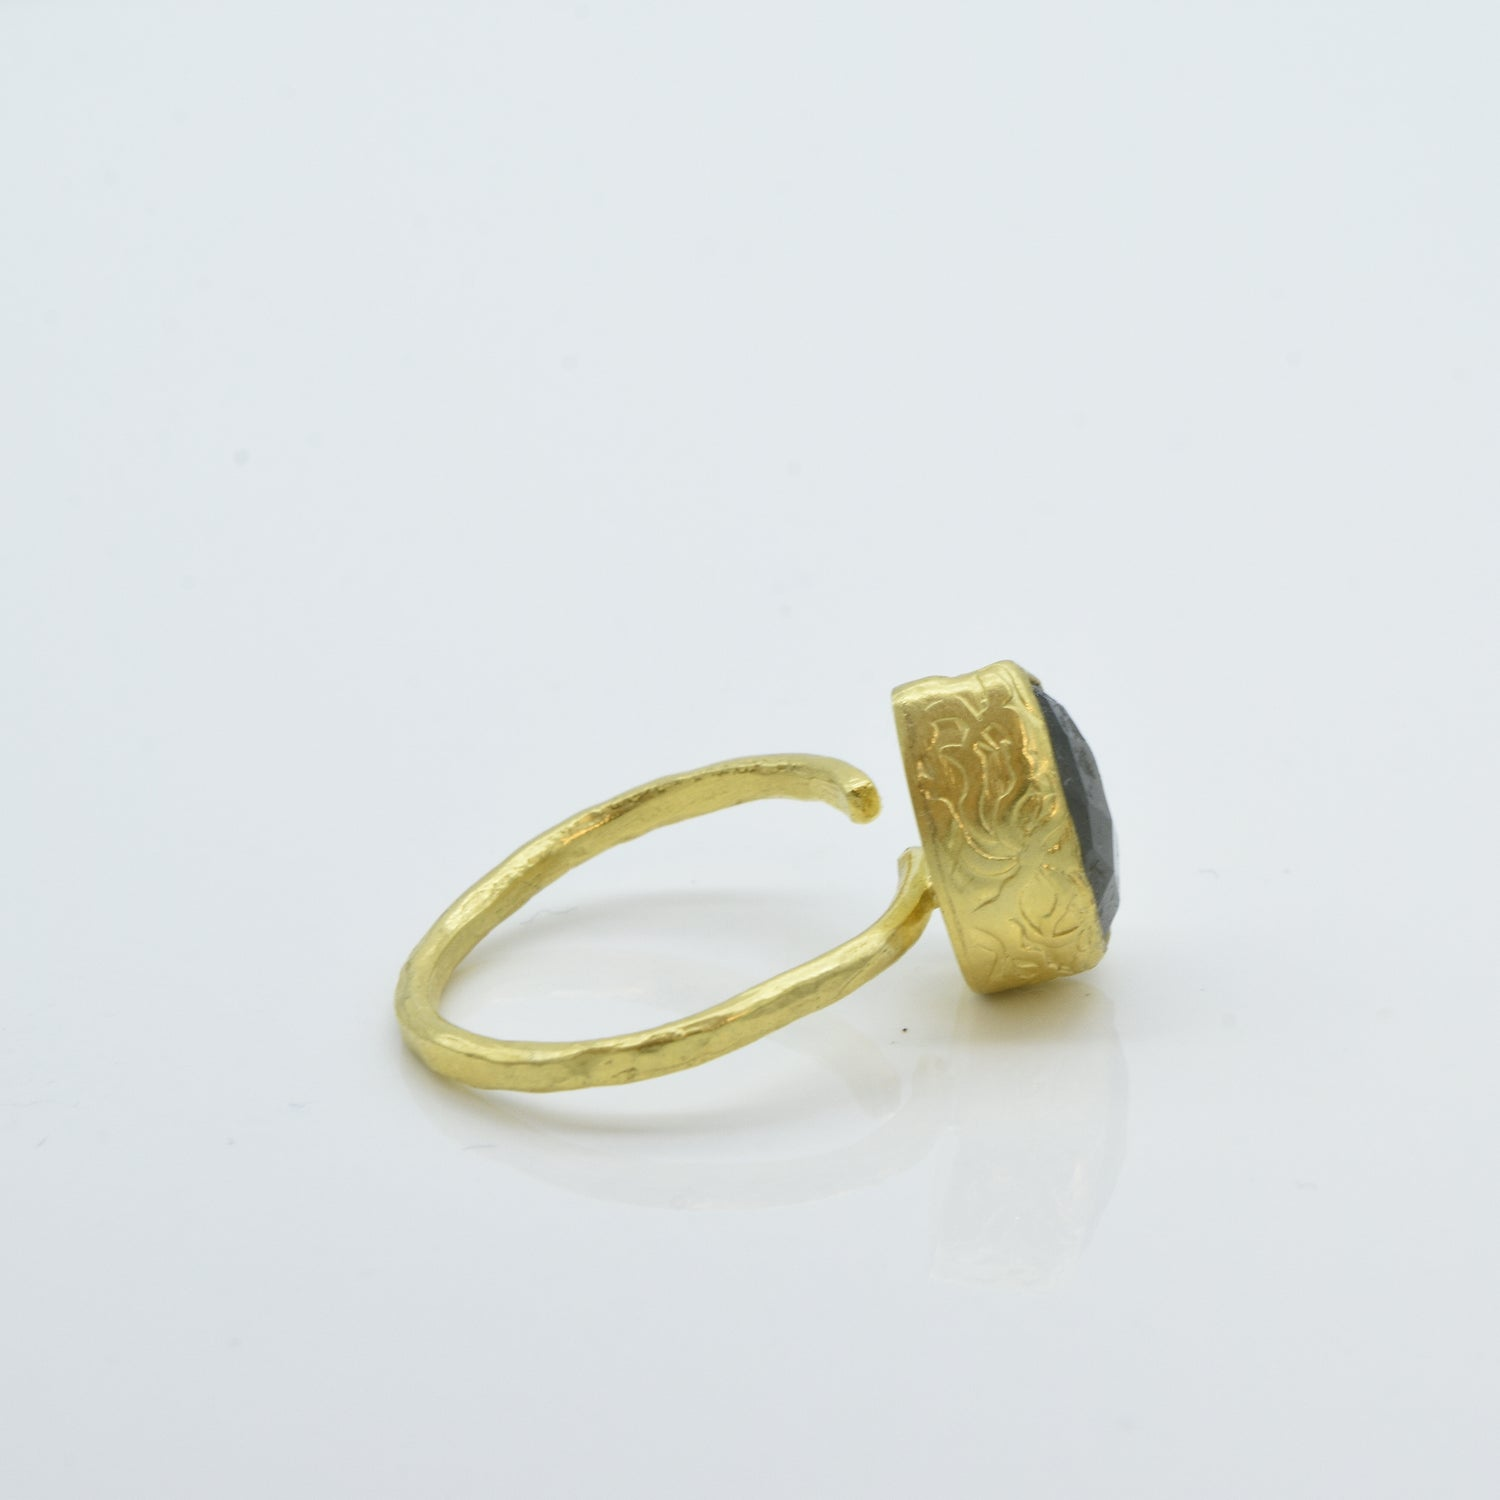 Aylas Labradorite adjustable ring - 21ct Gold plated brass - Handmade in Ottoman Style by Artisan